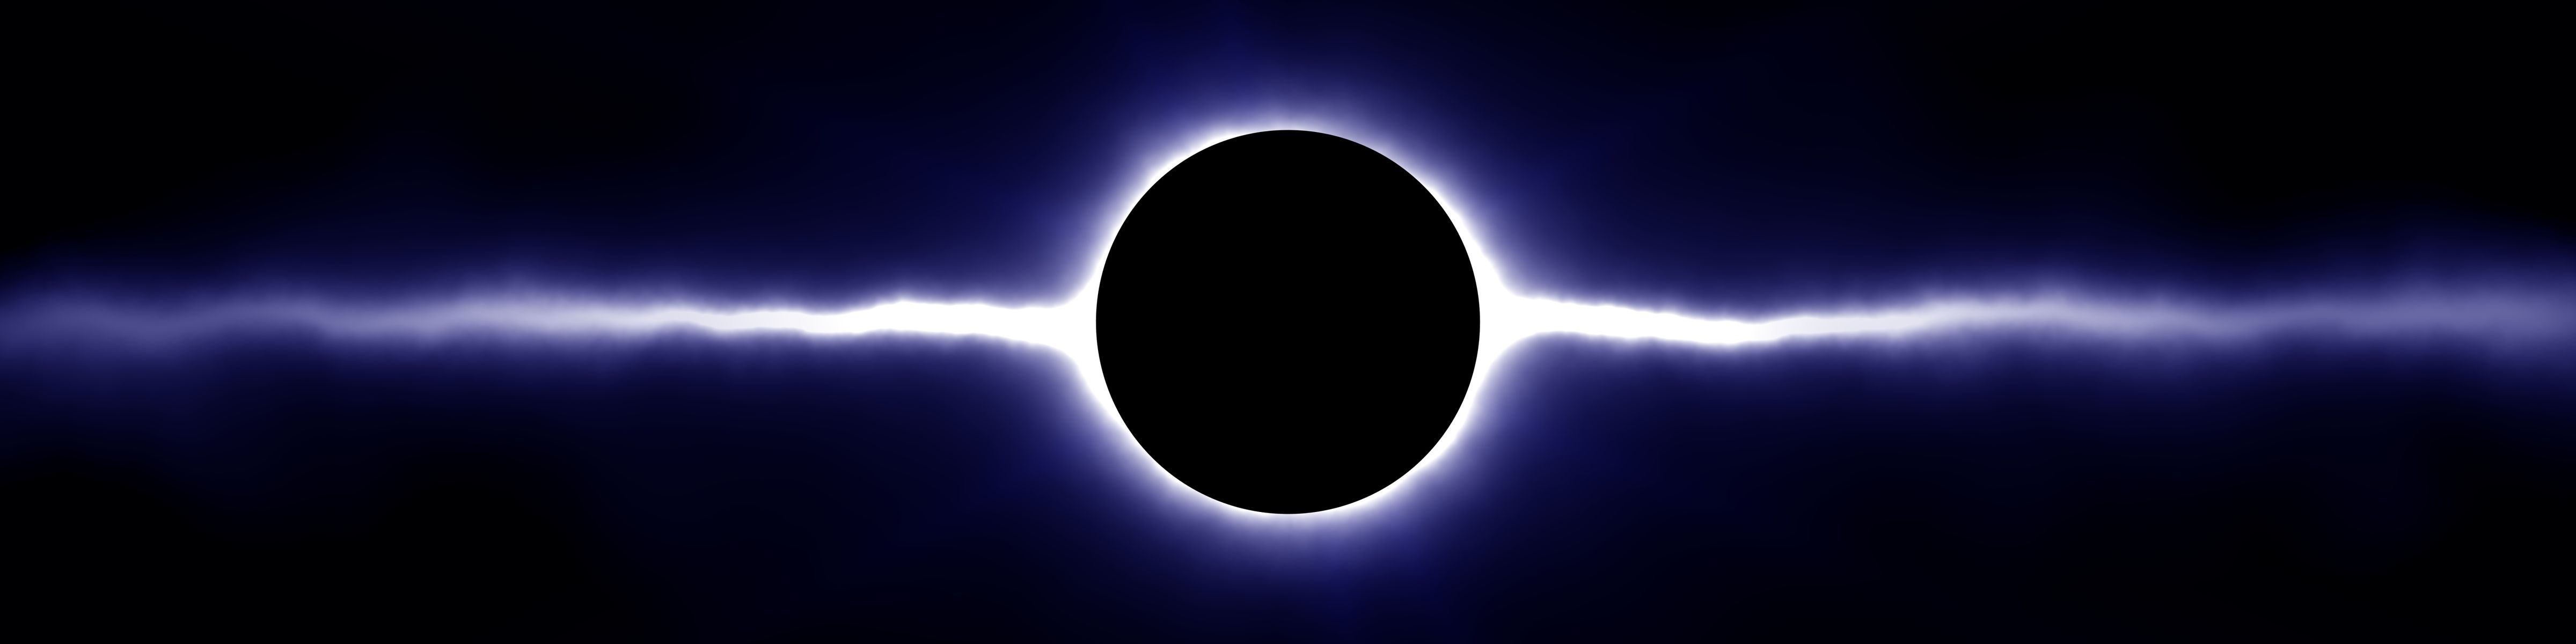 4800x1200 Solar Eclipse HD Wallpaper | Background Image | 4800x1200 | ID:6393 ...